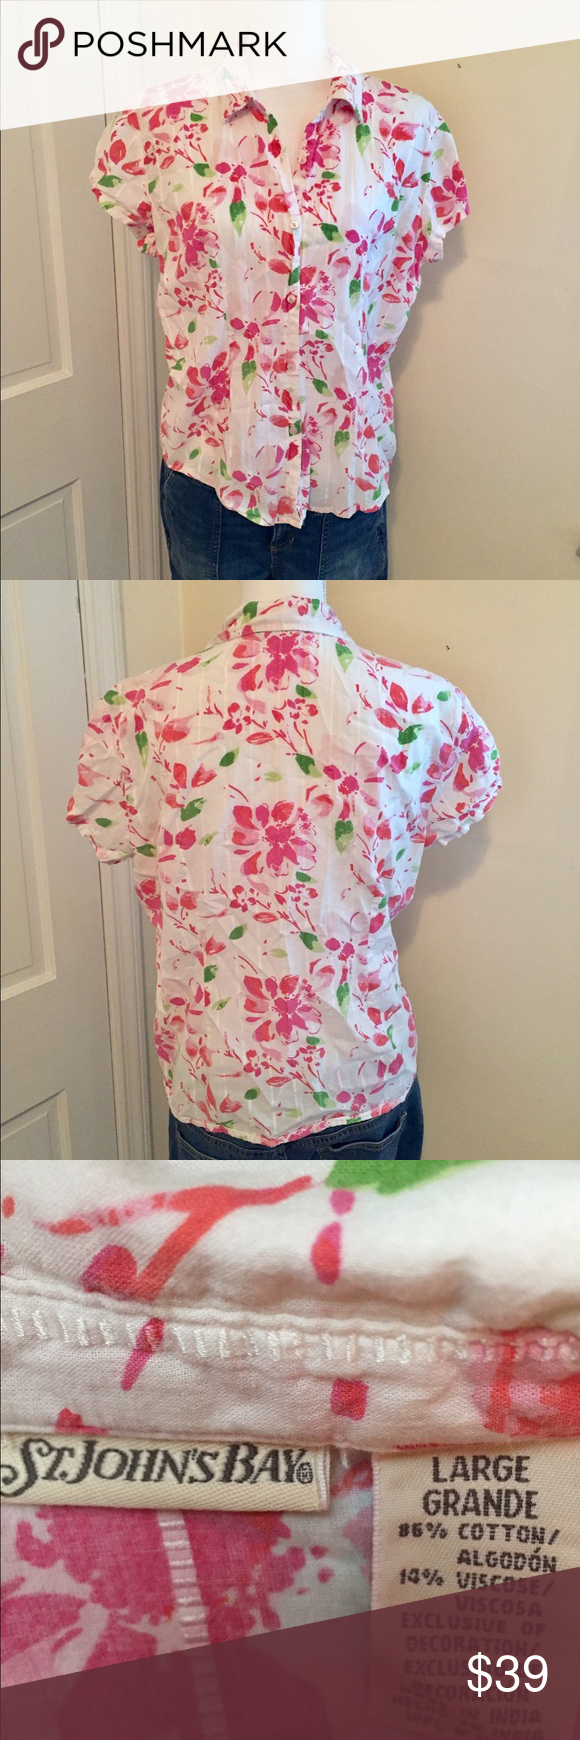 Floral Summer Blouse 🍃🌷🍃 Ready, Set, Summer! Perfect and cool material. Lovely floral pattern 🍃💐🍃 St. John's Bay Tops